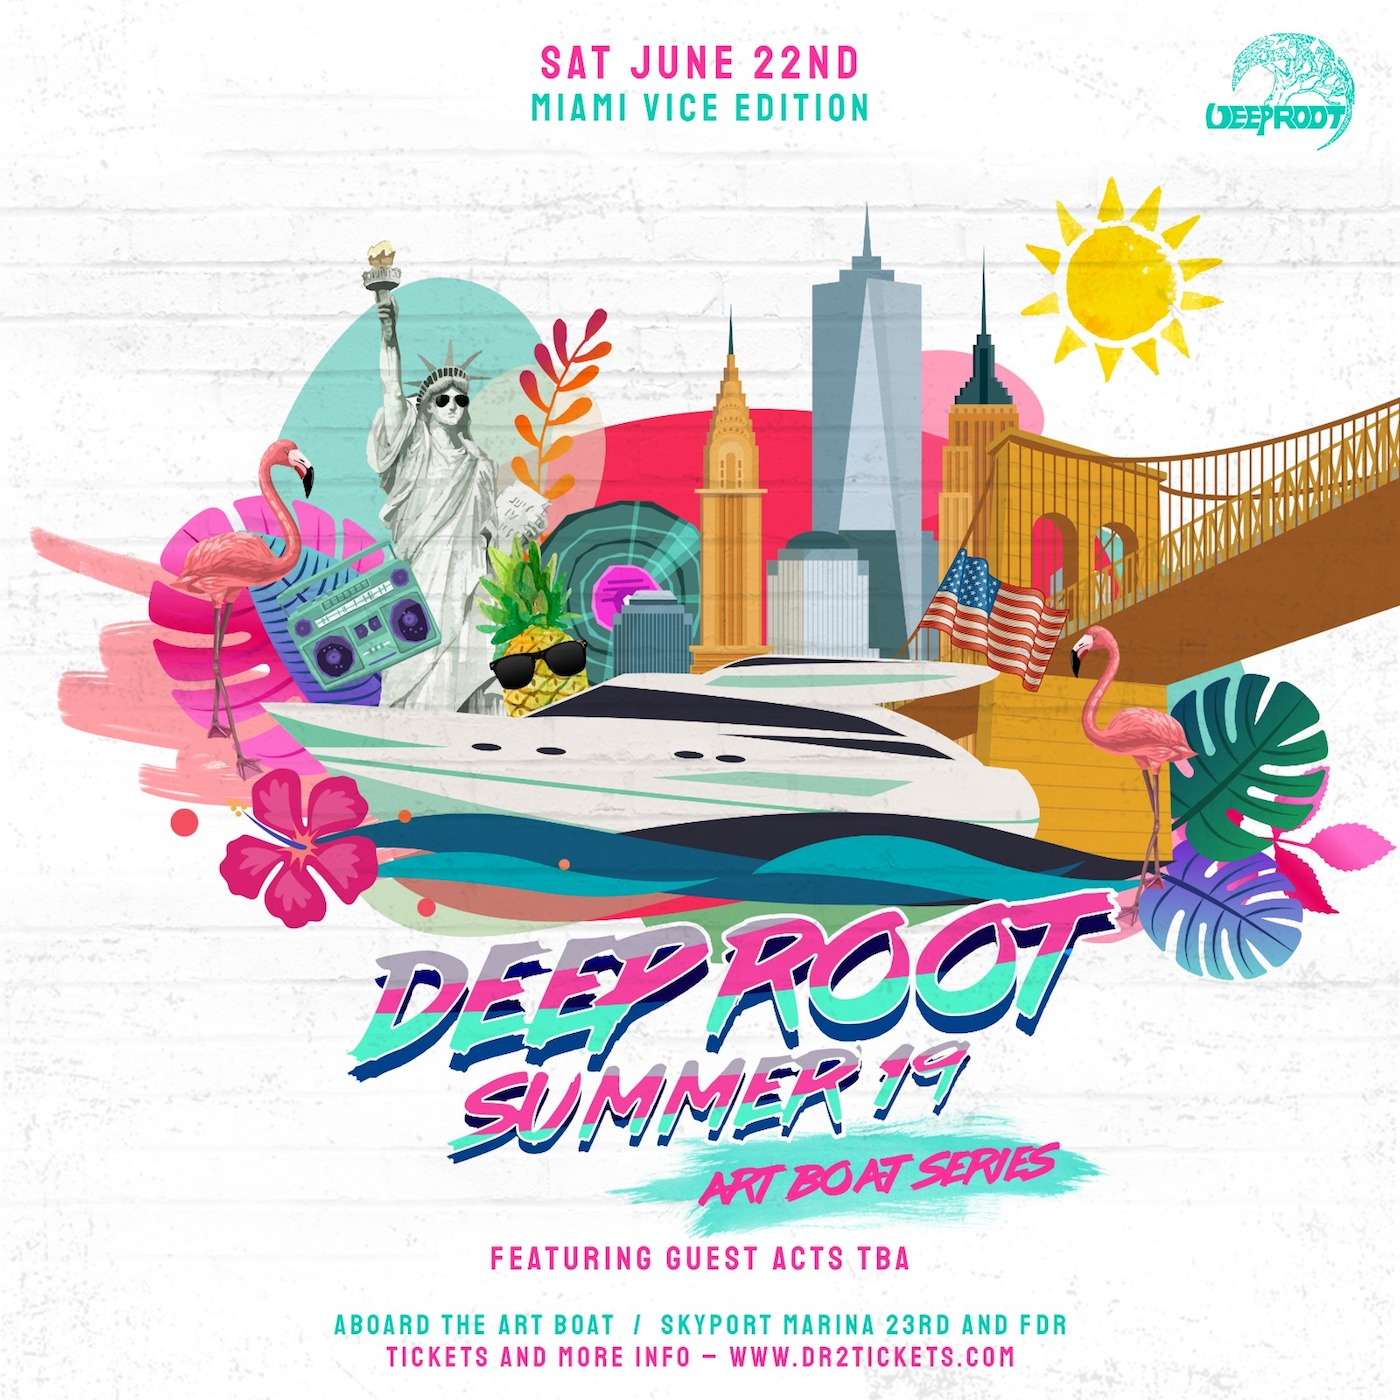 The Art Boat Yacht Party: Miami Vice